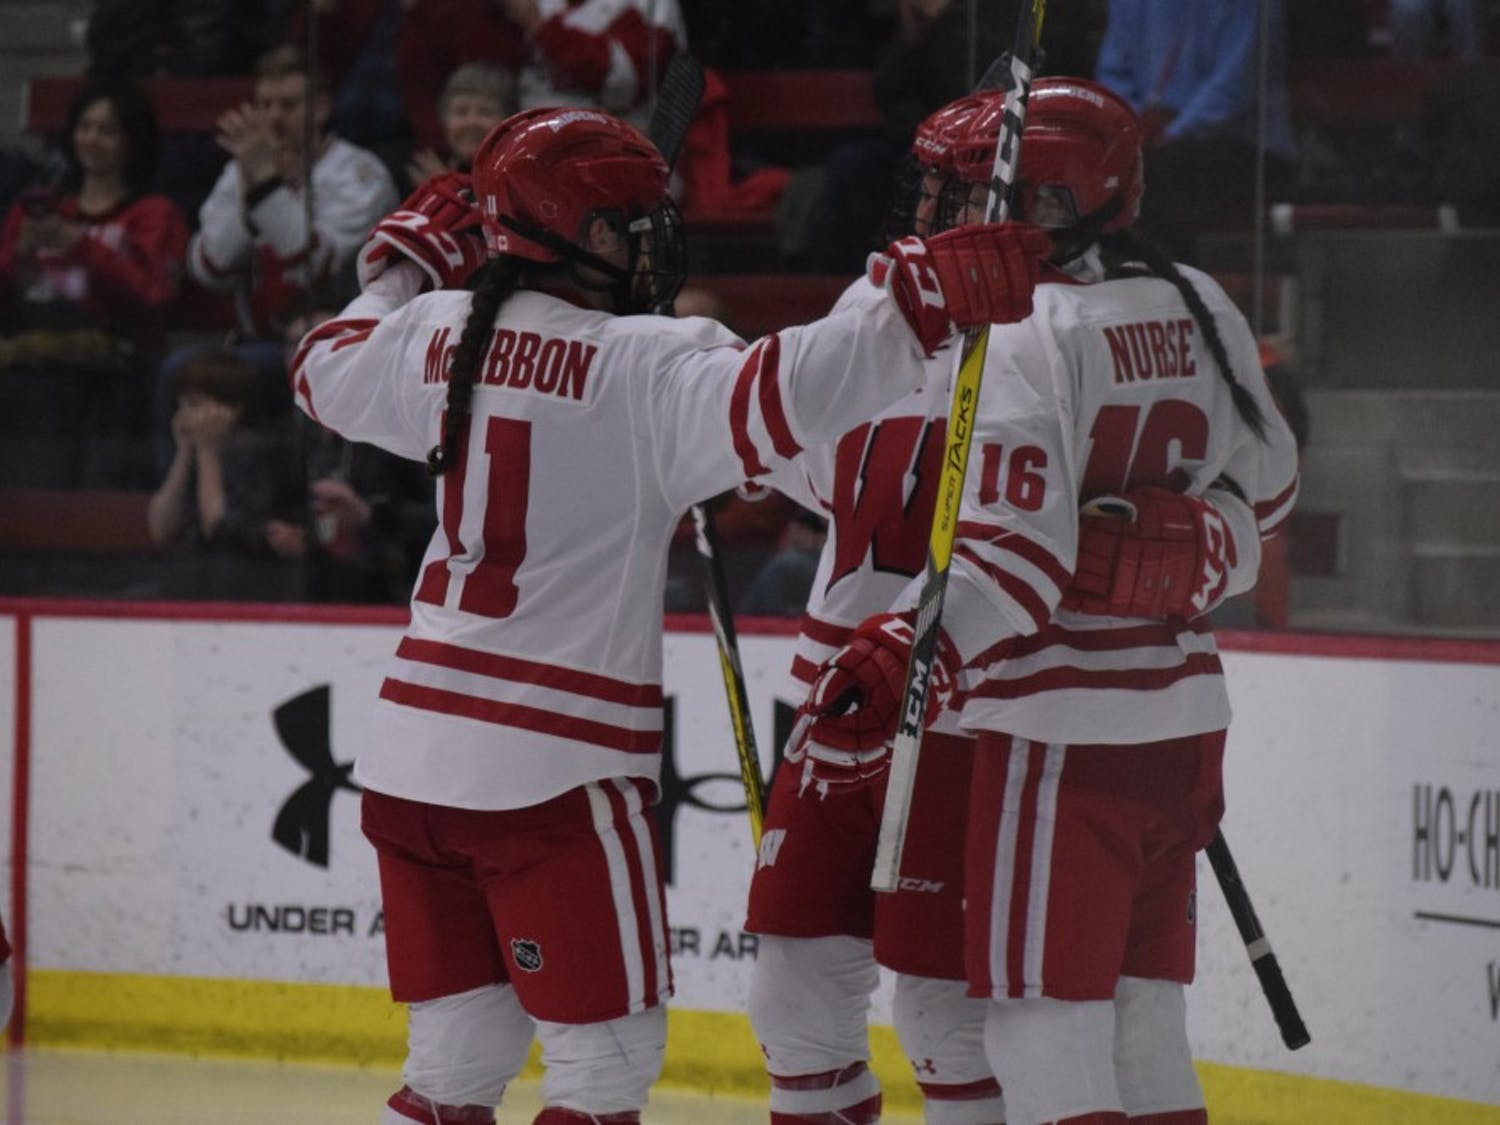 Wisconsin's quest for its fifth national title begins this weekend at LaBahn Arena against Robert Morris.